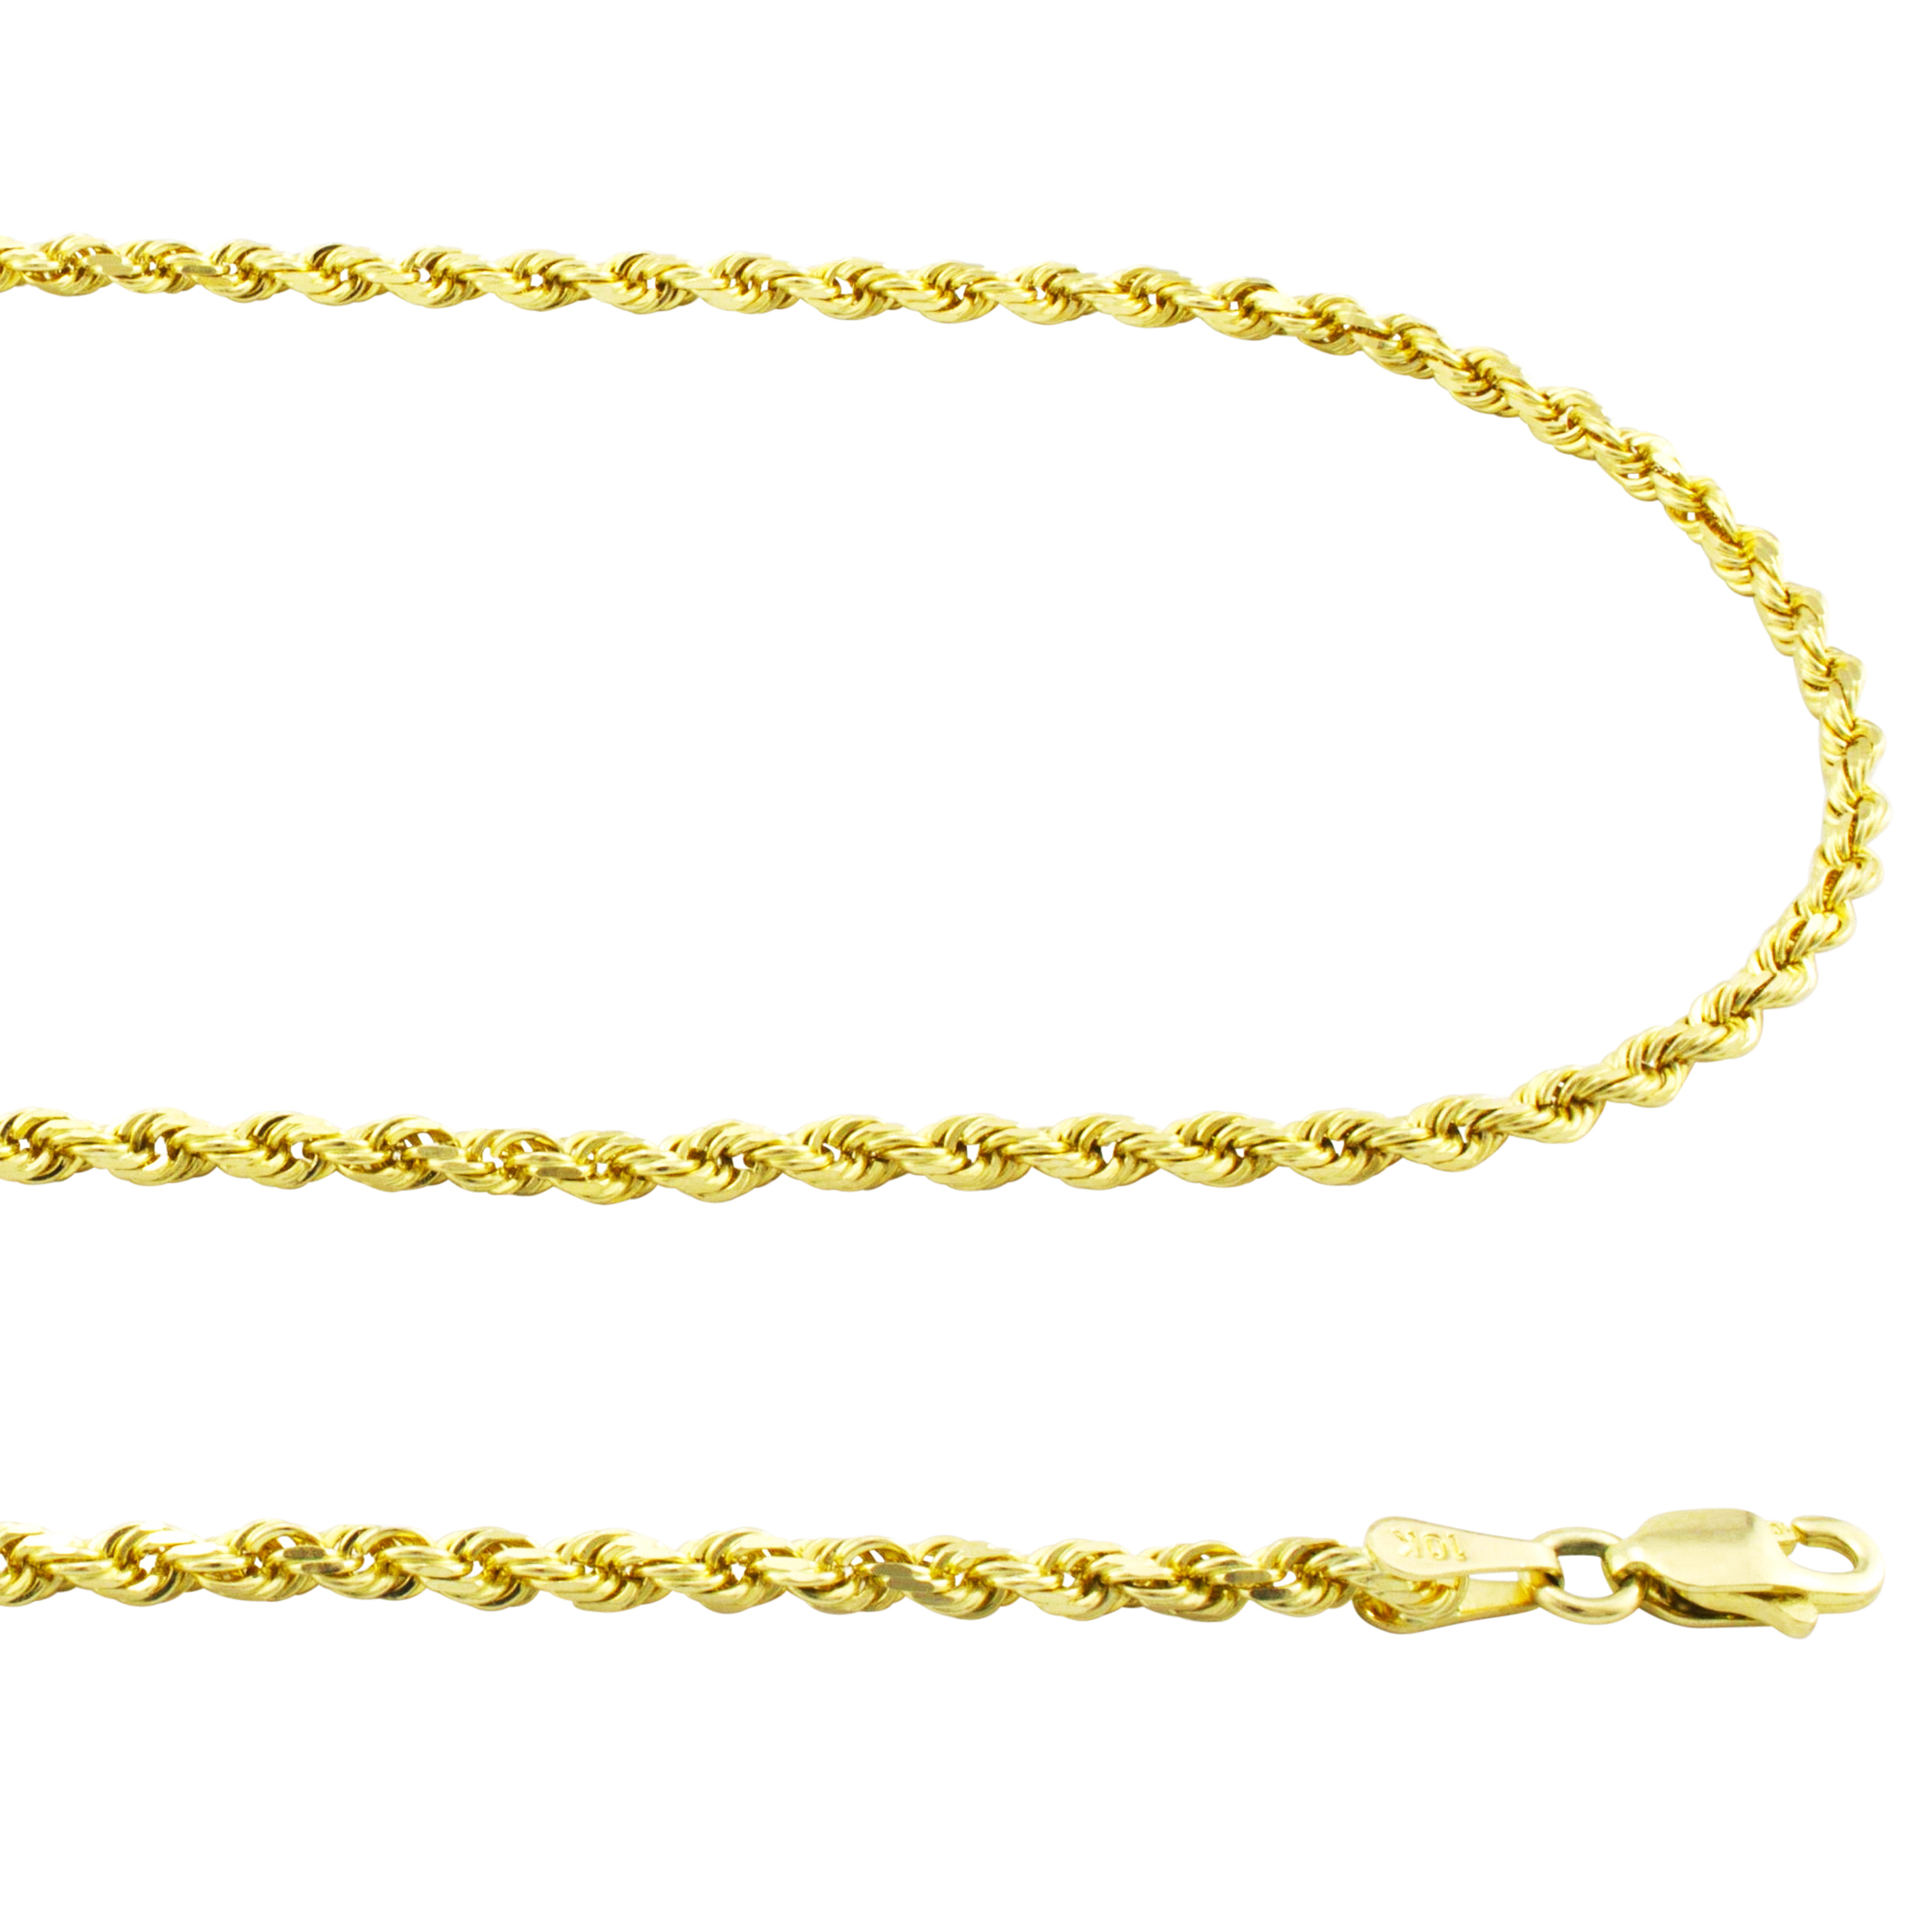 10K-Yellow-Gold-2-5mm-Solid-Rope-Chain-Pendant-Necklace-Lobster-Clasp-16-034-30-034 thumbnail 13